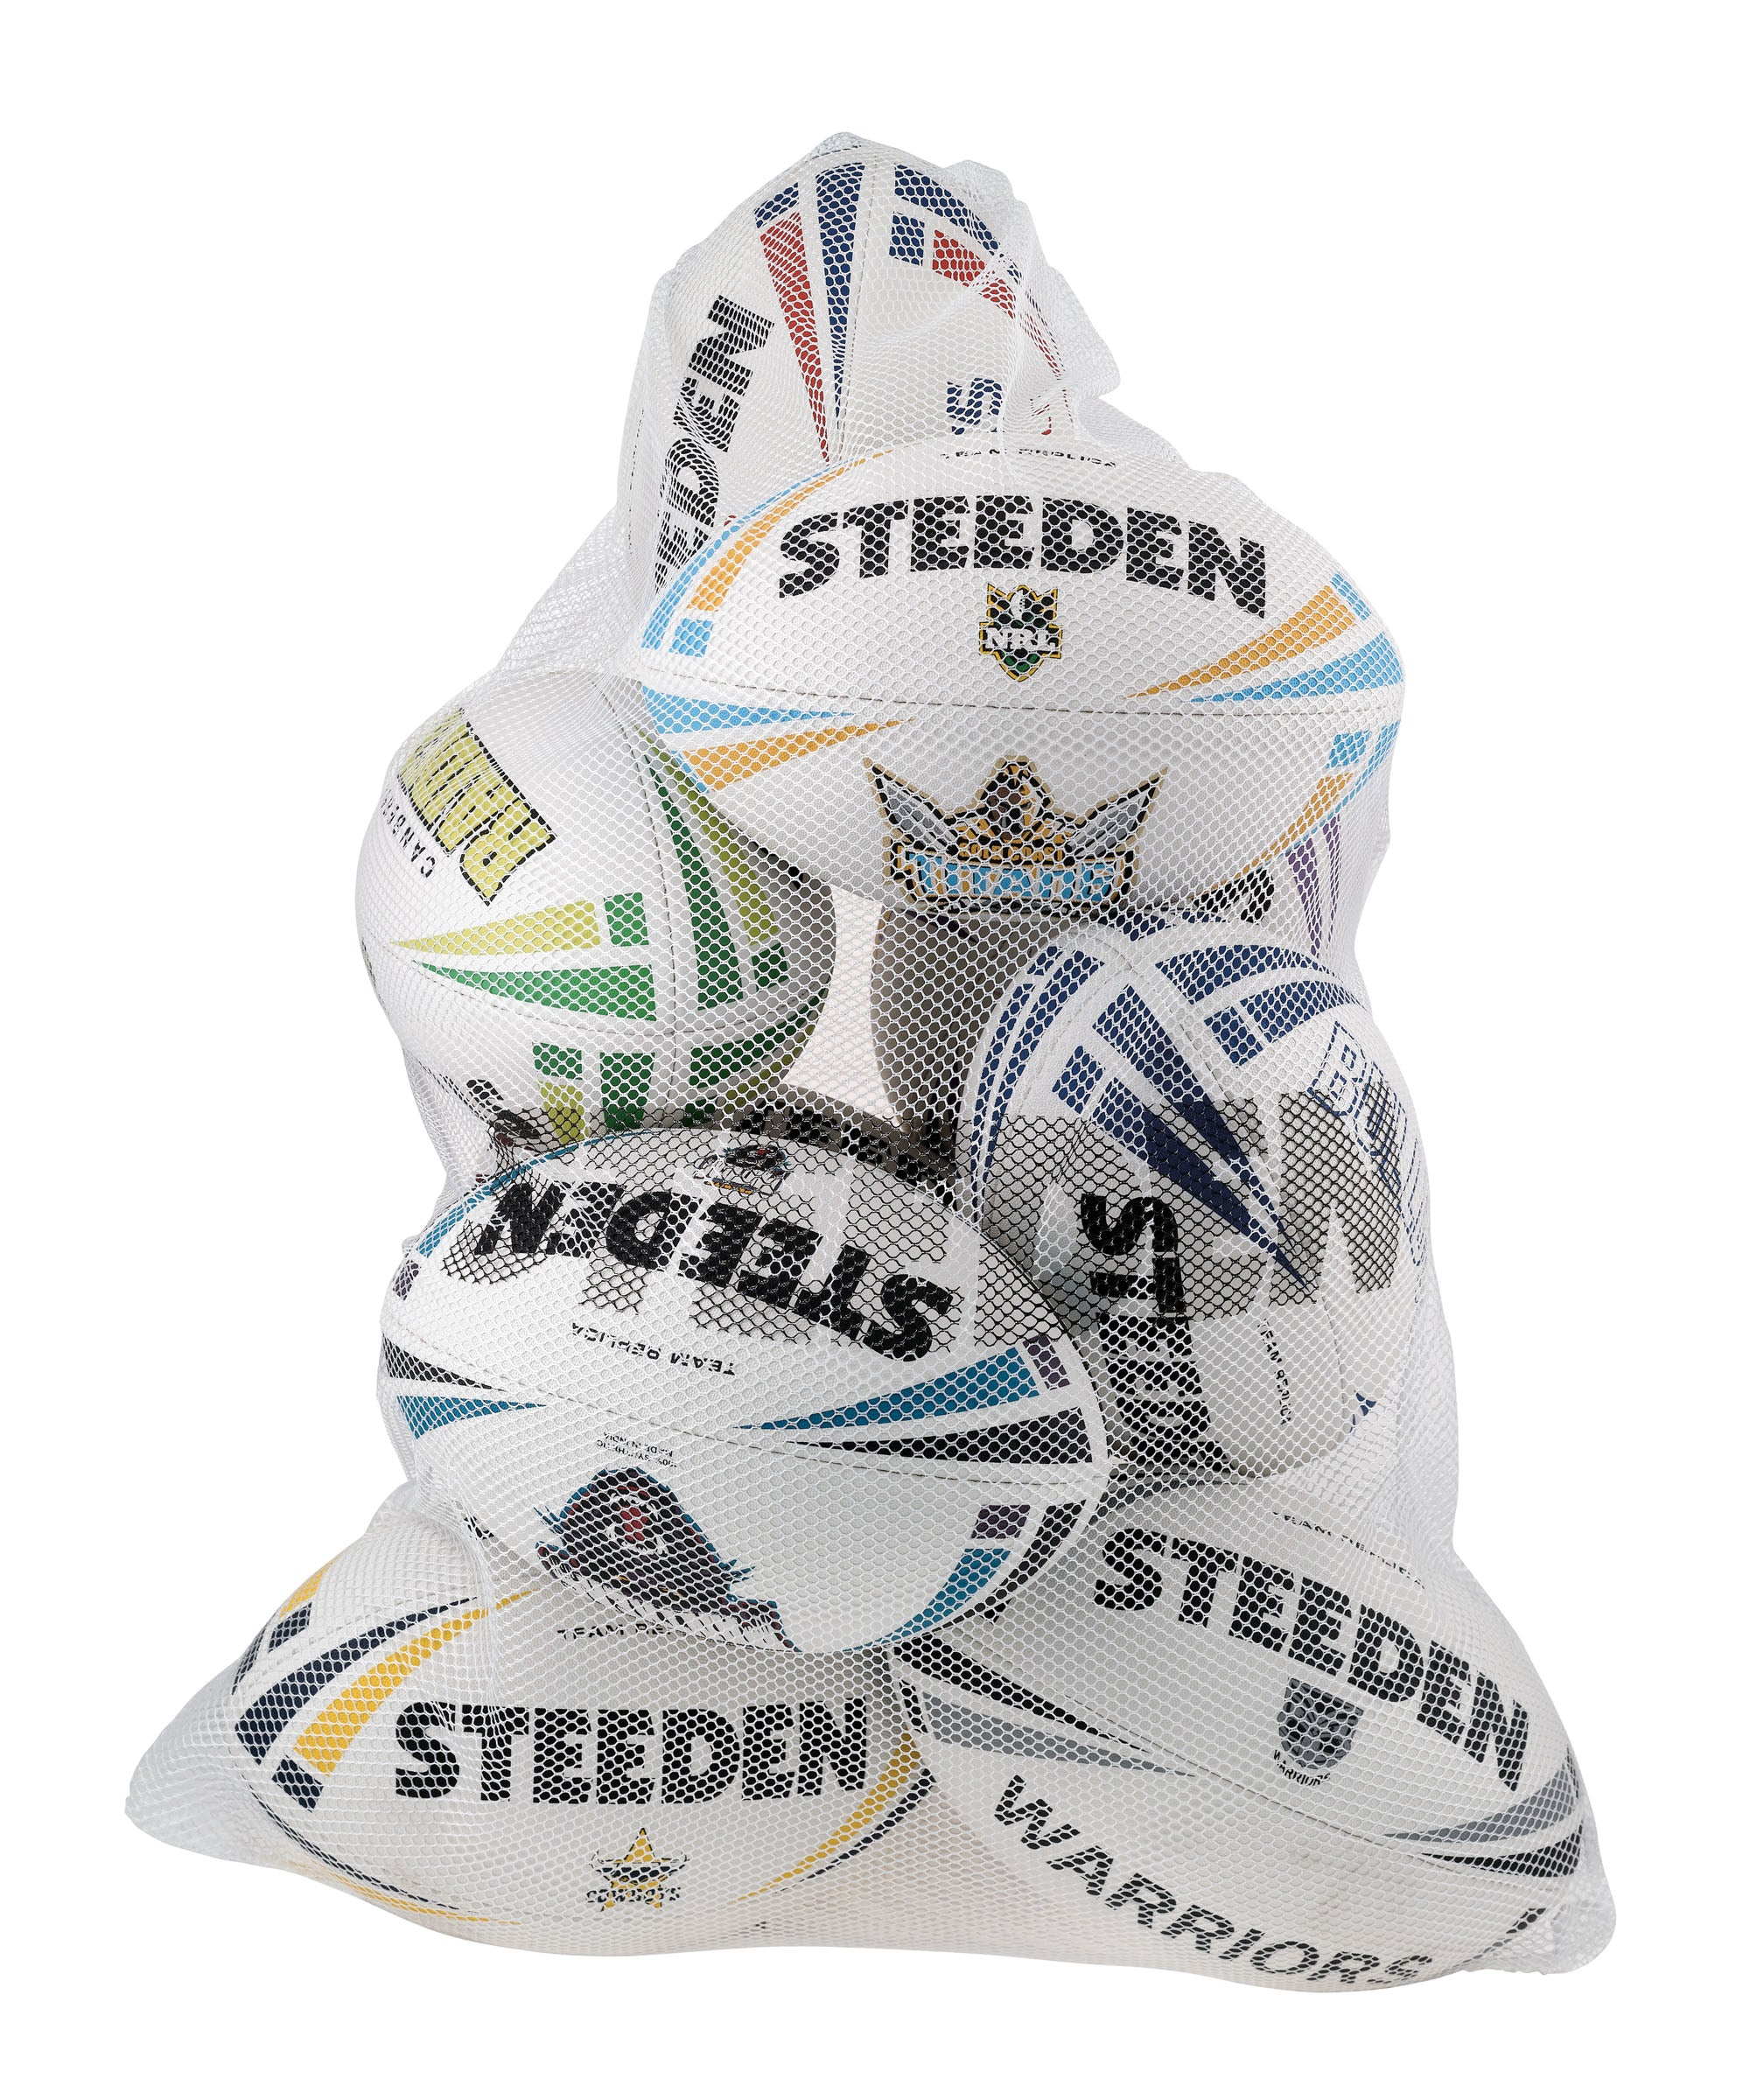 Mesh Ball Carrier - Steeden